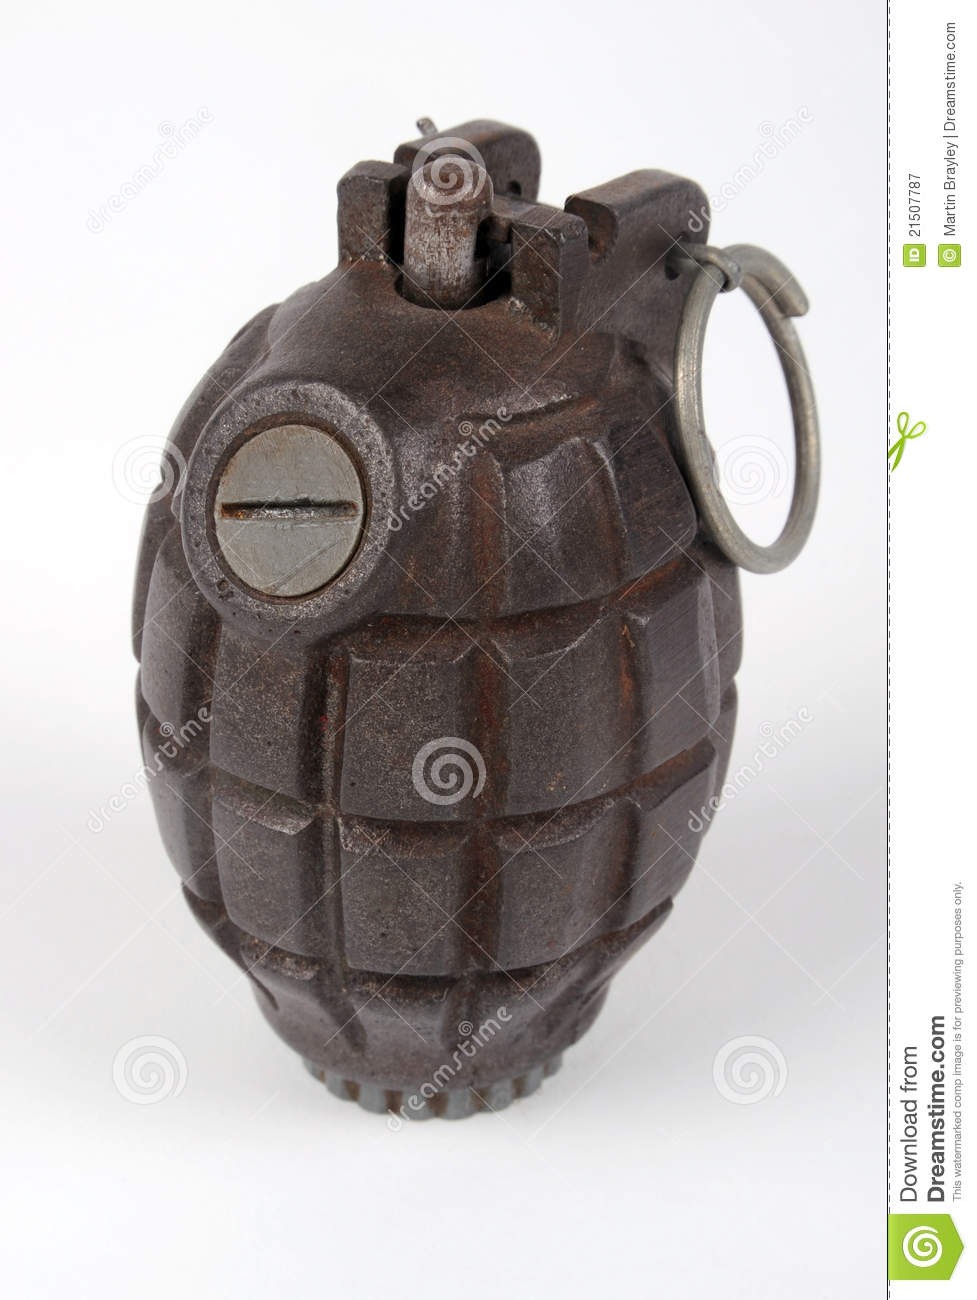 martin and the hand grenade The hand grenade is the dramatic story, covering its origins, development, use - in the world wars and into the present day - and lasting influence on close-quarter combat and infantry tactics.